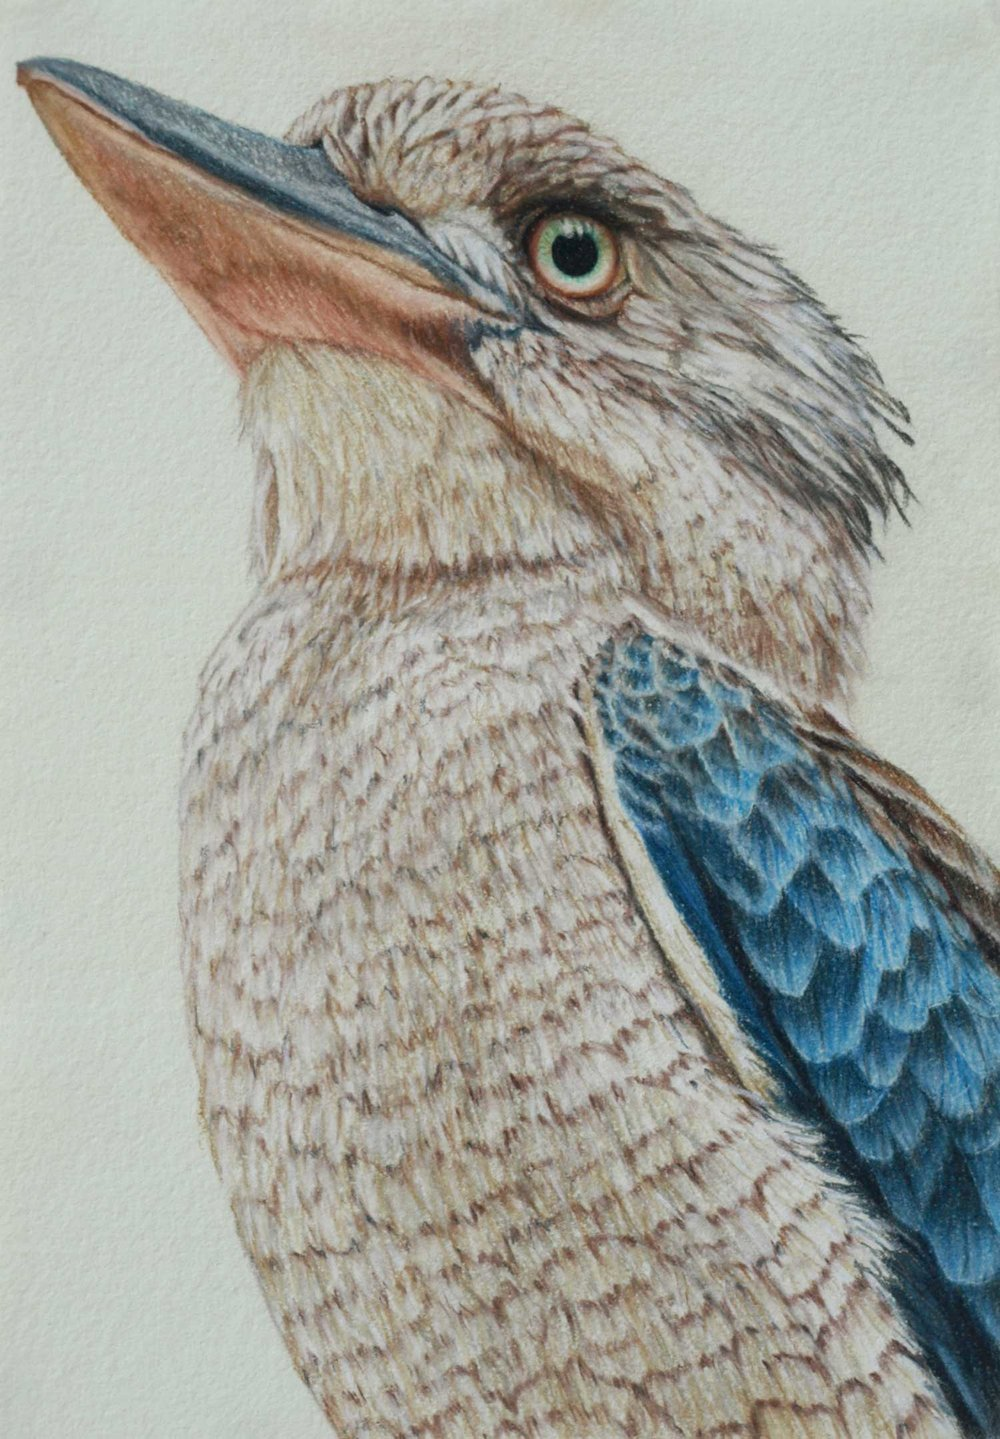 Blue Winged kookaburra  37 x 26 cm, Pastel Drawing on handmade paper  Available as a limited edition print  $650